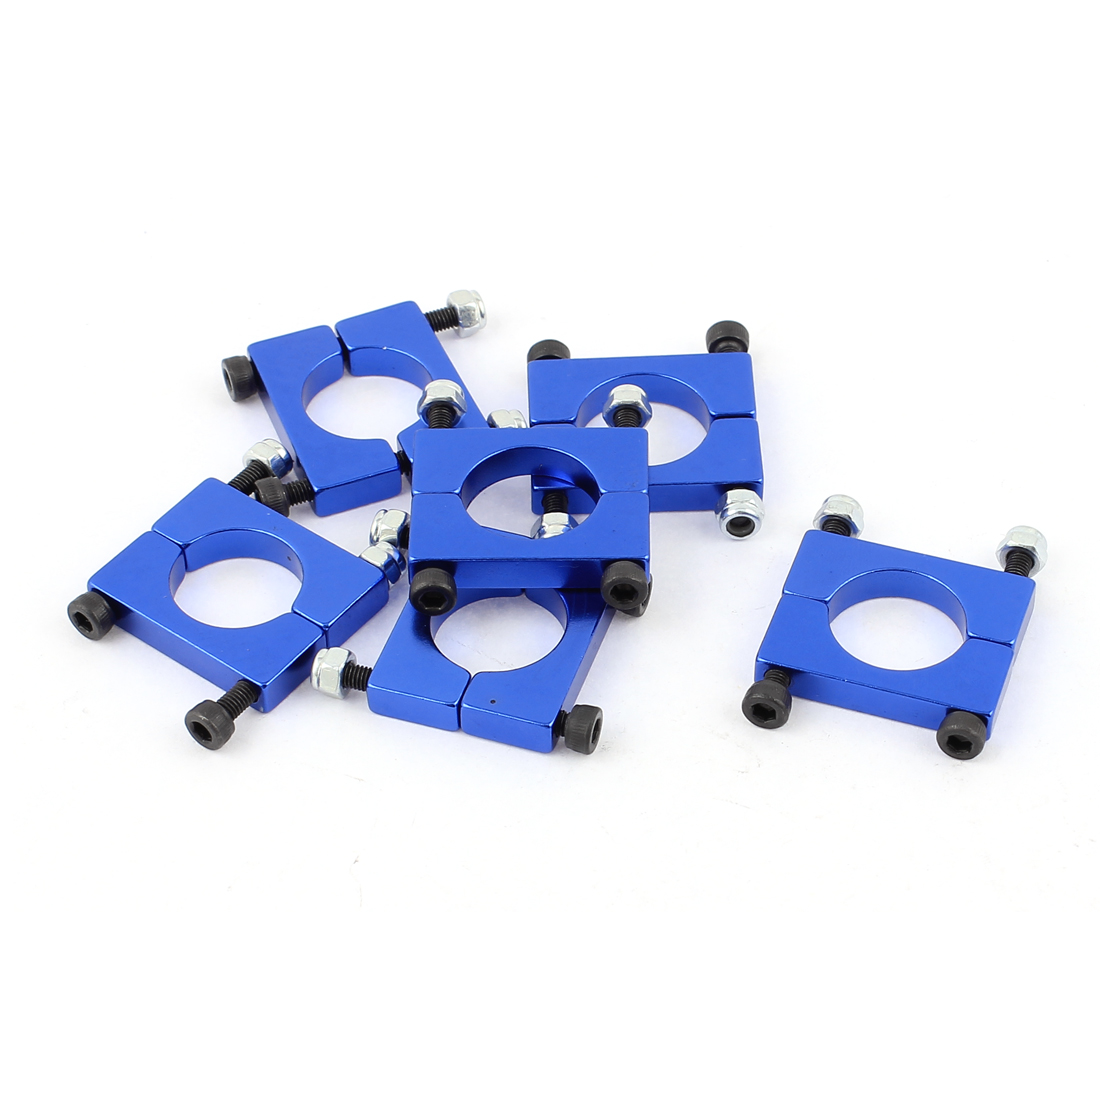 6pcs Alloy 16mm Tube Clip Fixture and Screw for Multicopter Tartor ATG 16mm Carbon tube Blue